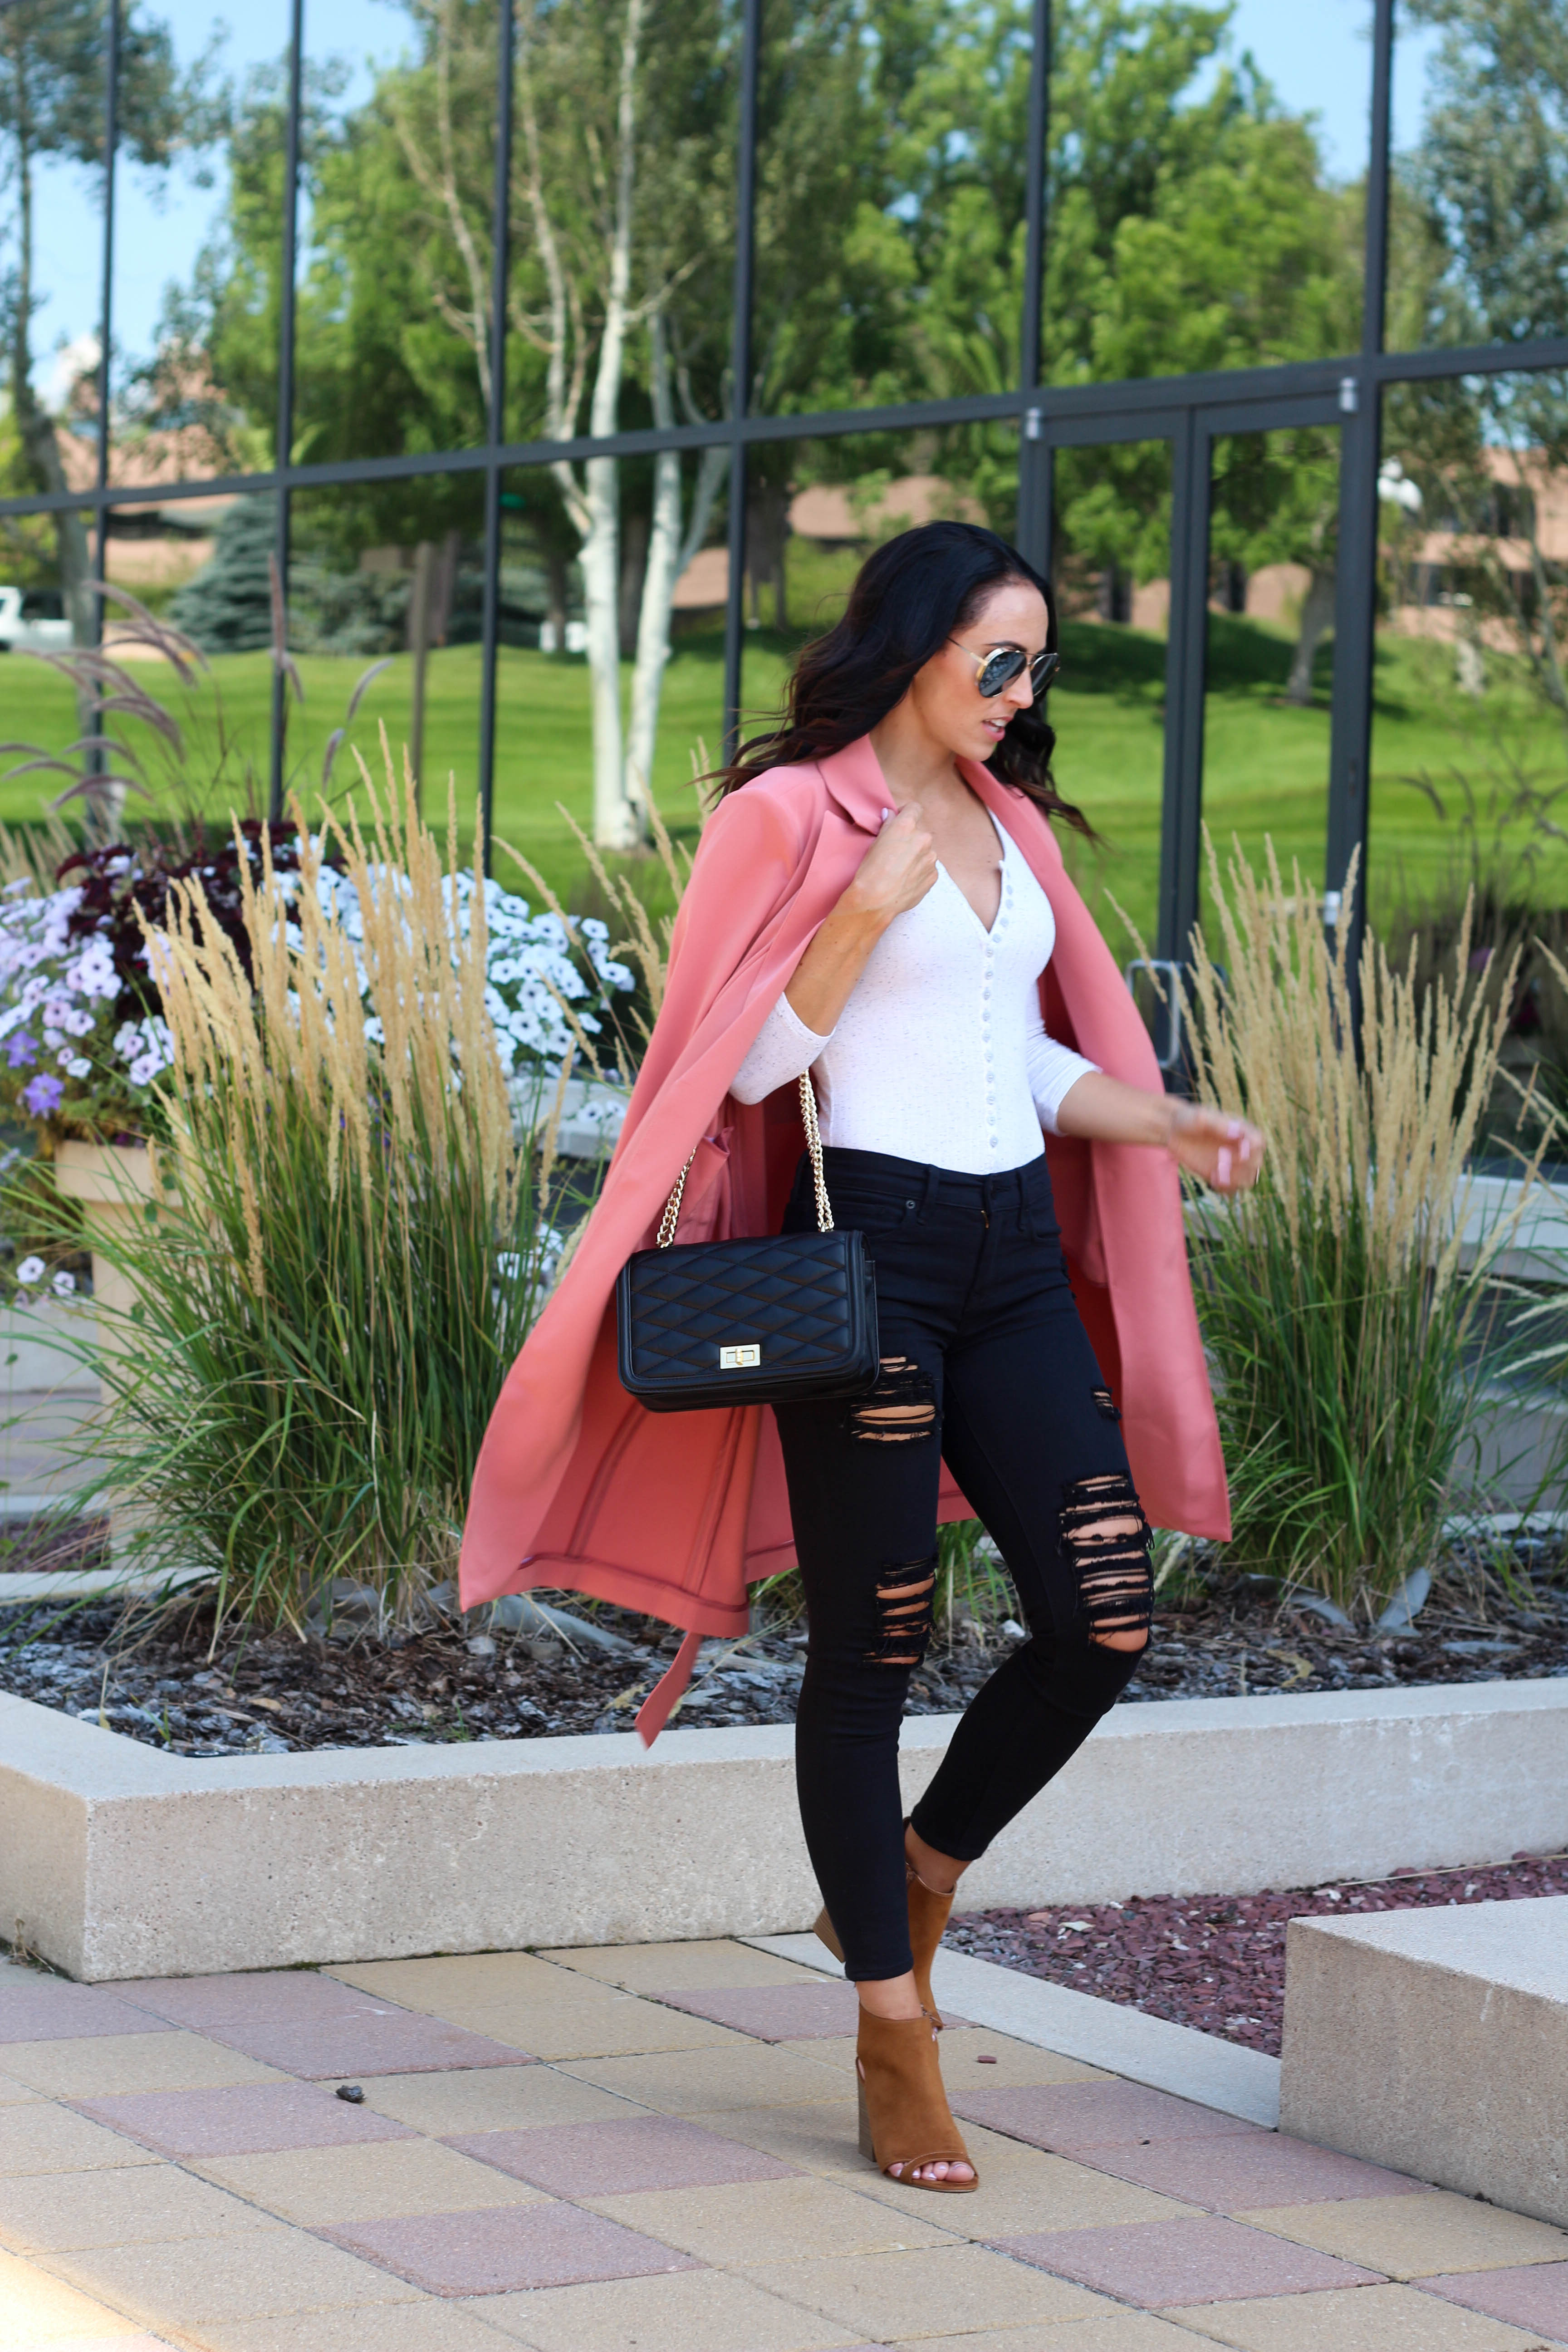 PaleOMG Fashion - Jeans That Make You Feel Absolutely Amazing